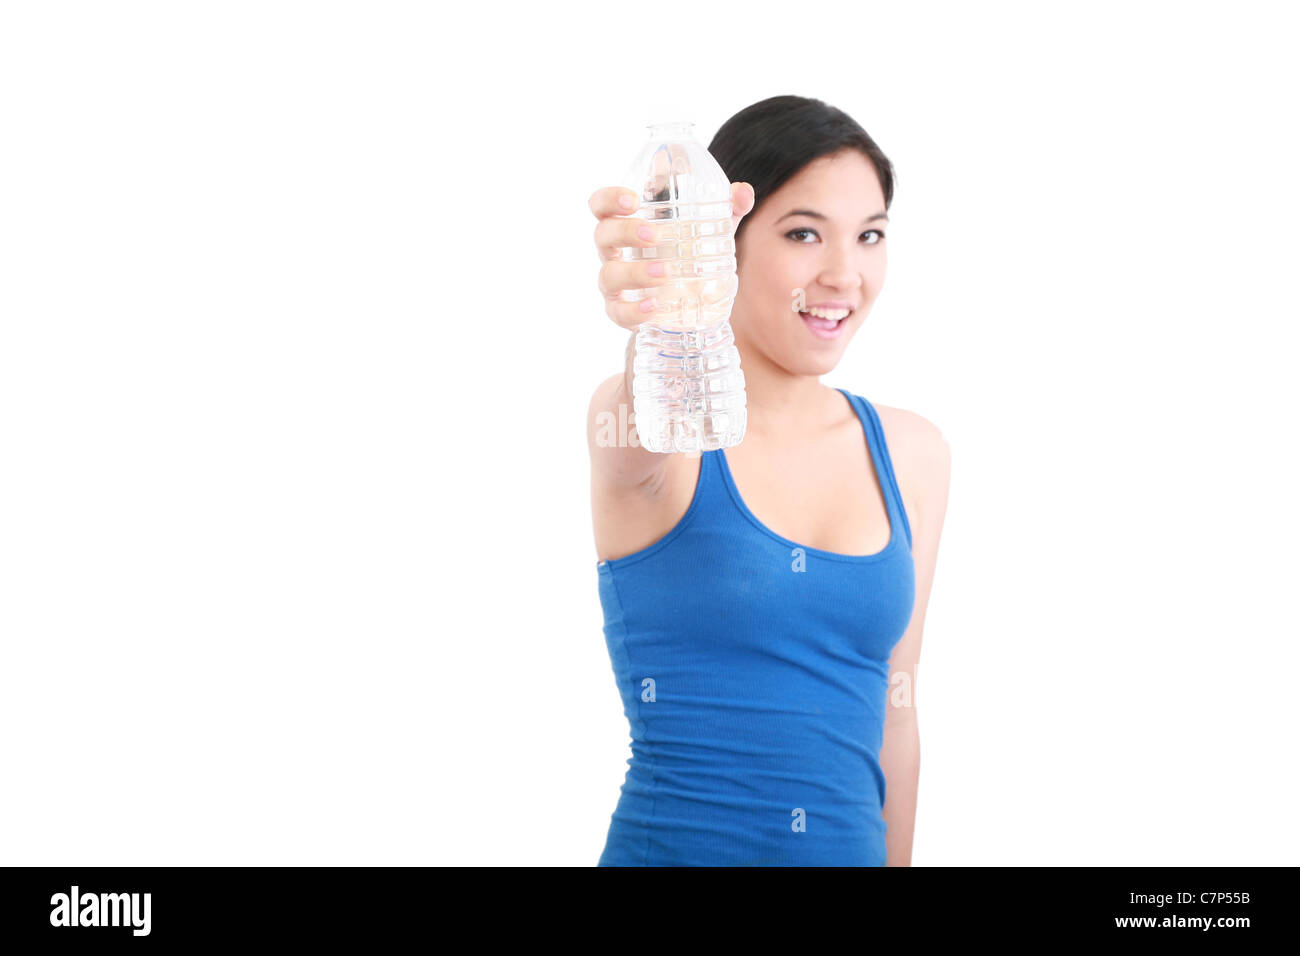 smiling young woman with water, isolated over white background - Stock Image